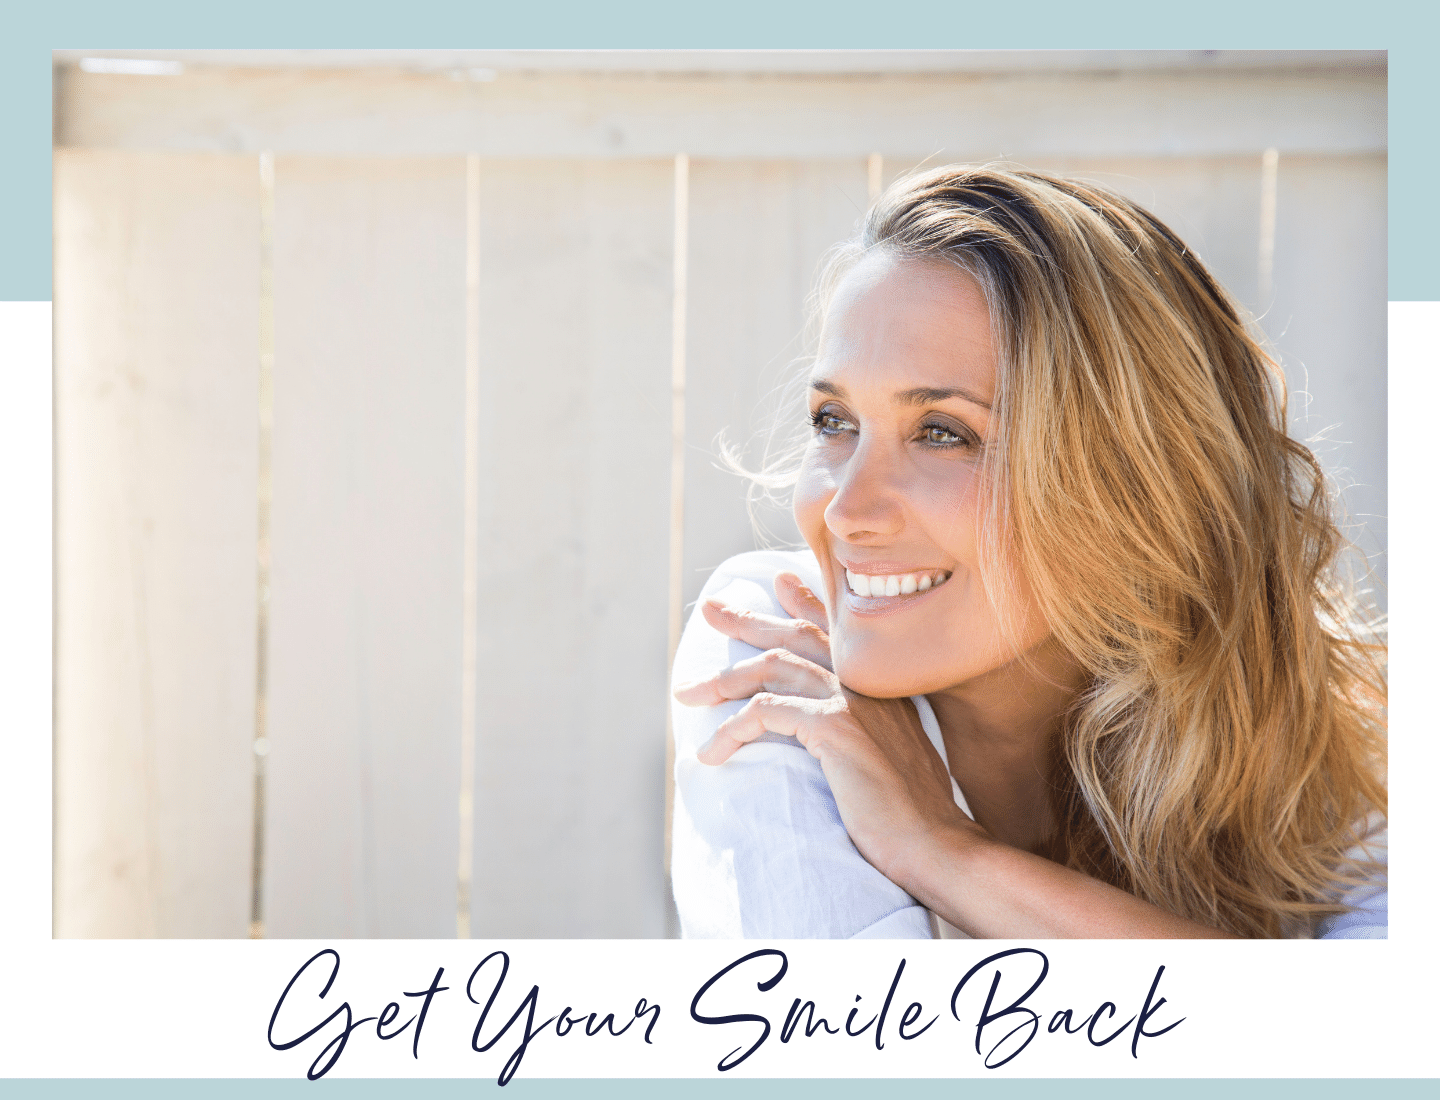 Get Your Smile Back